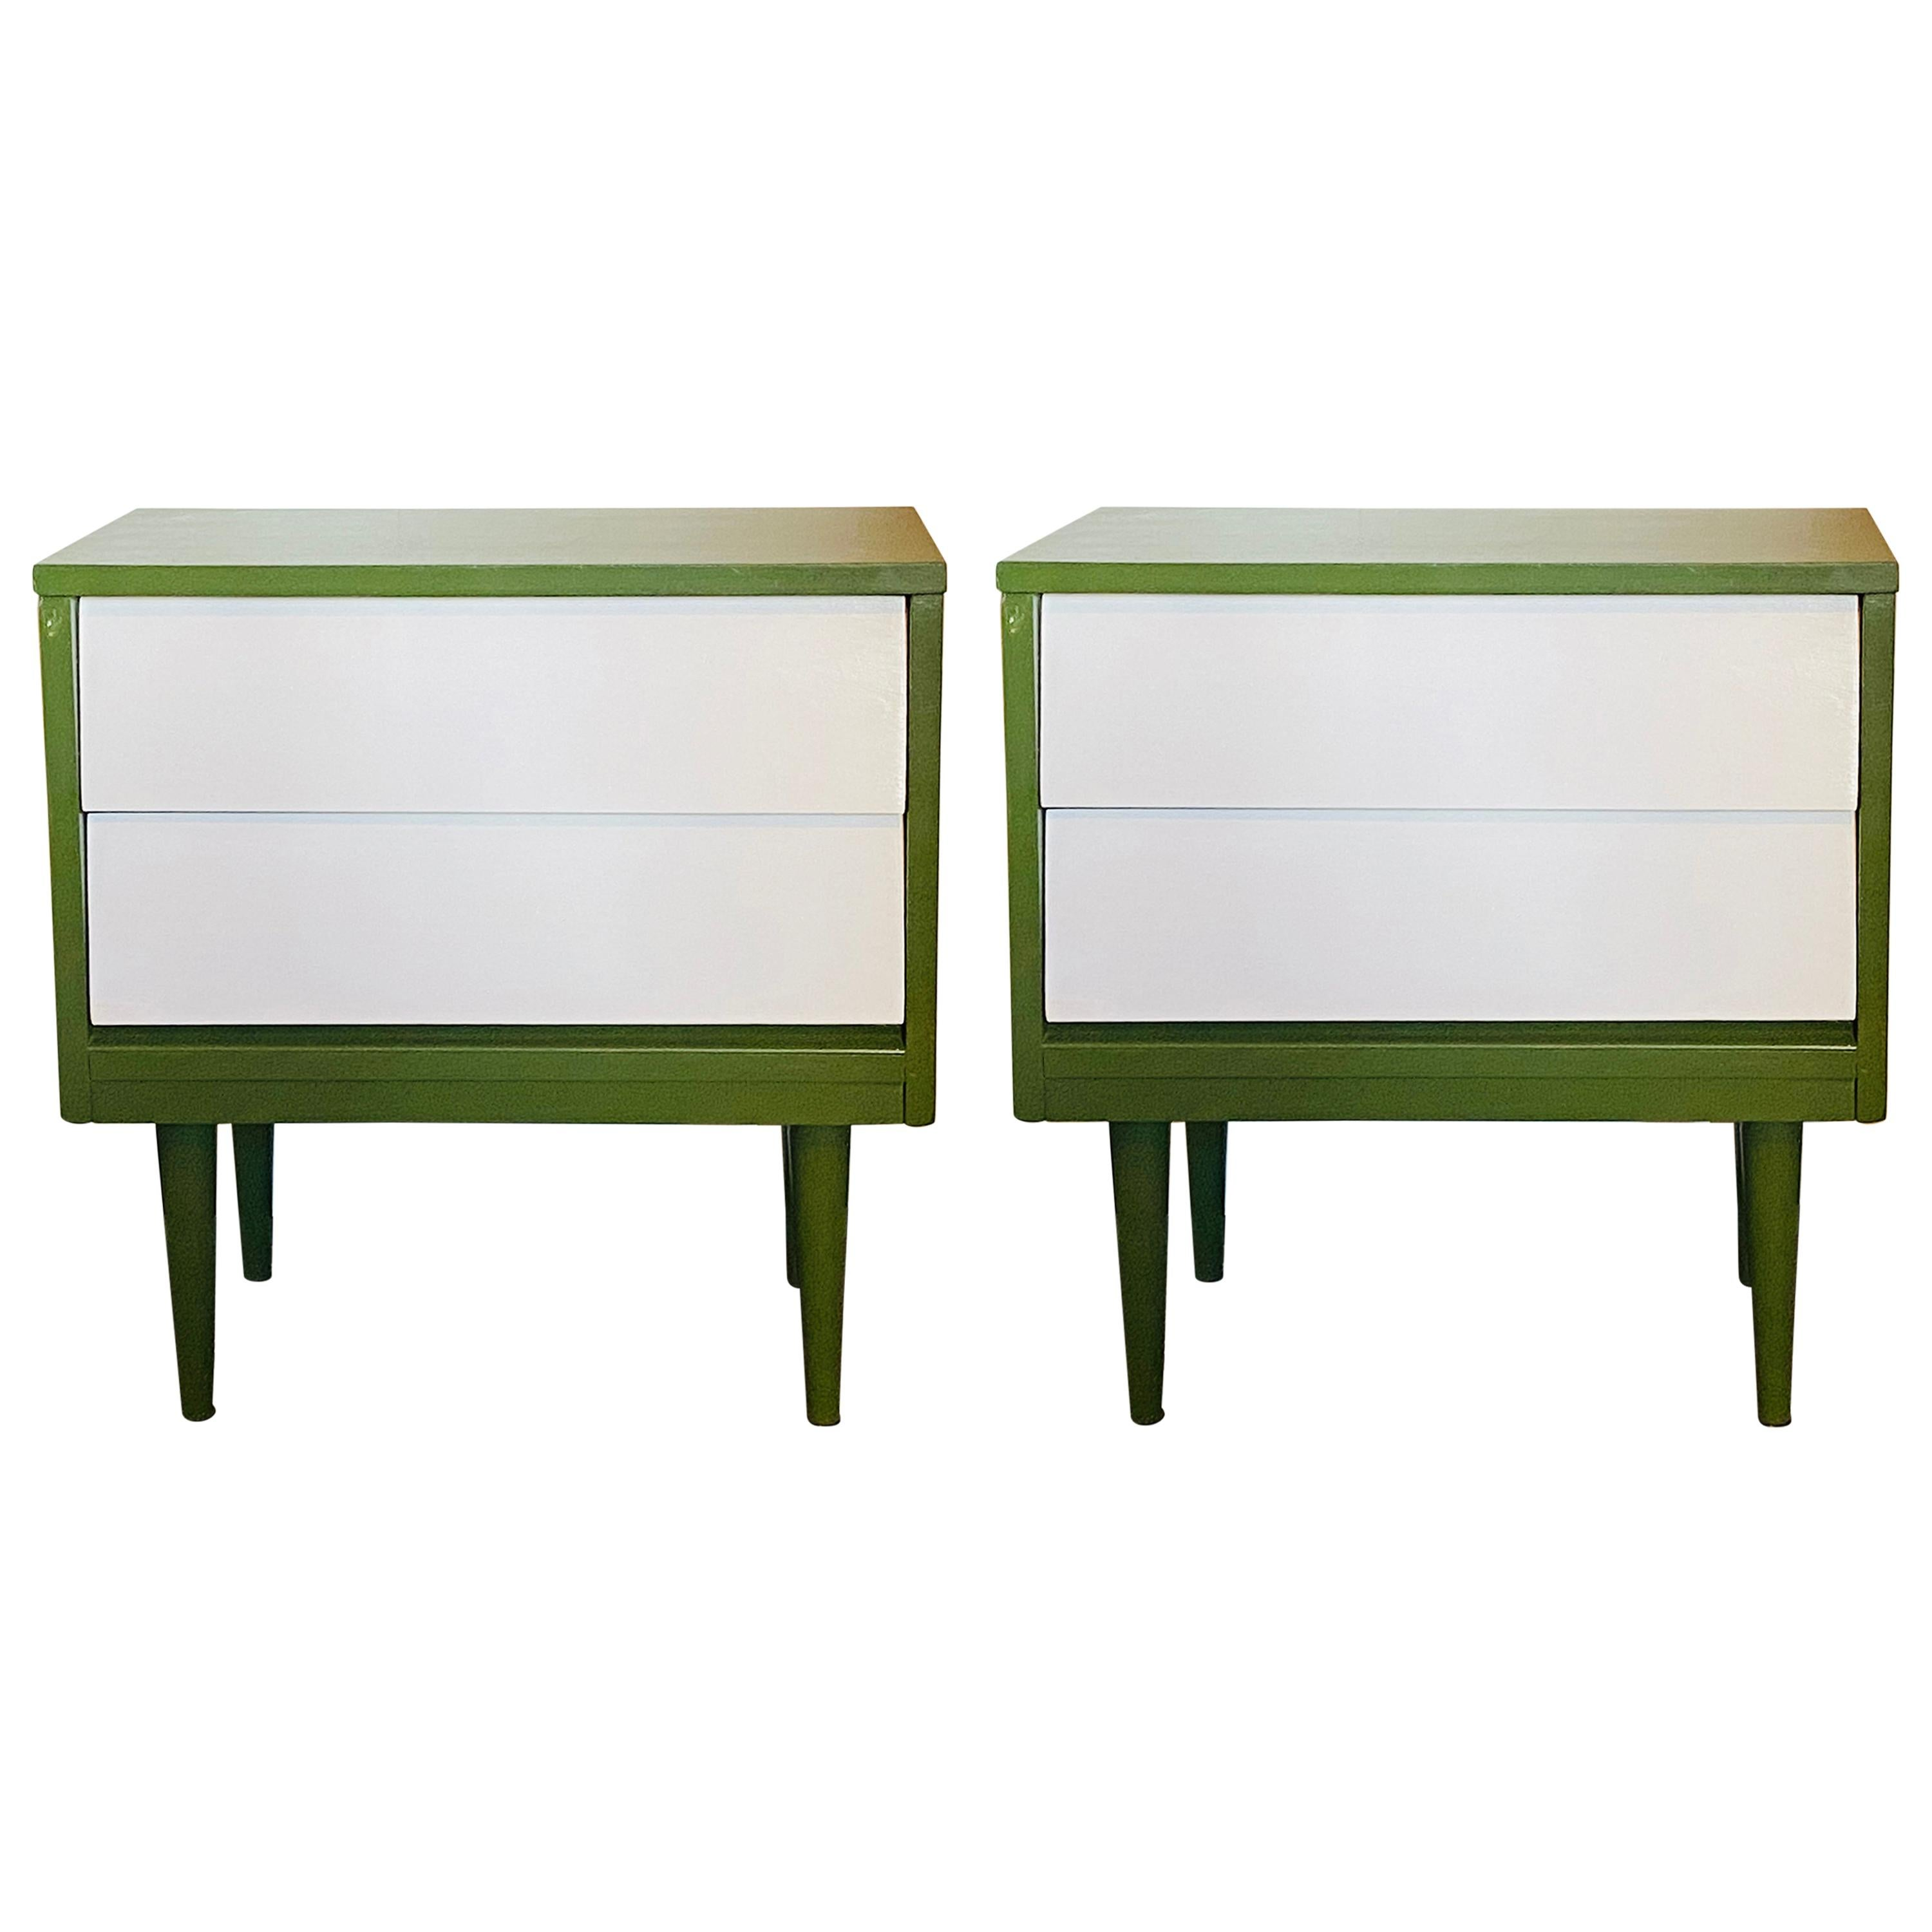 Mid-Century Modern Nightstand or Lamp Table, a Pair